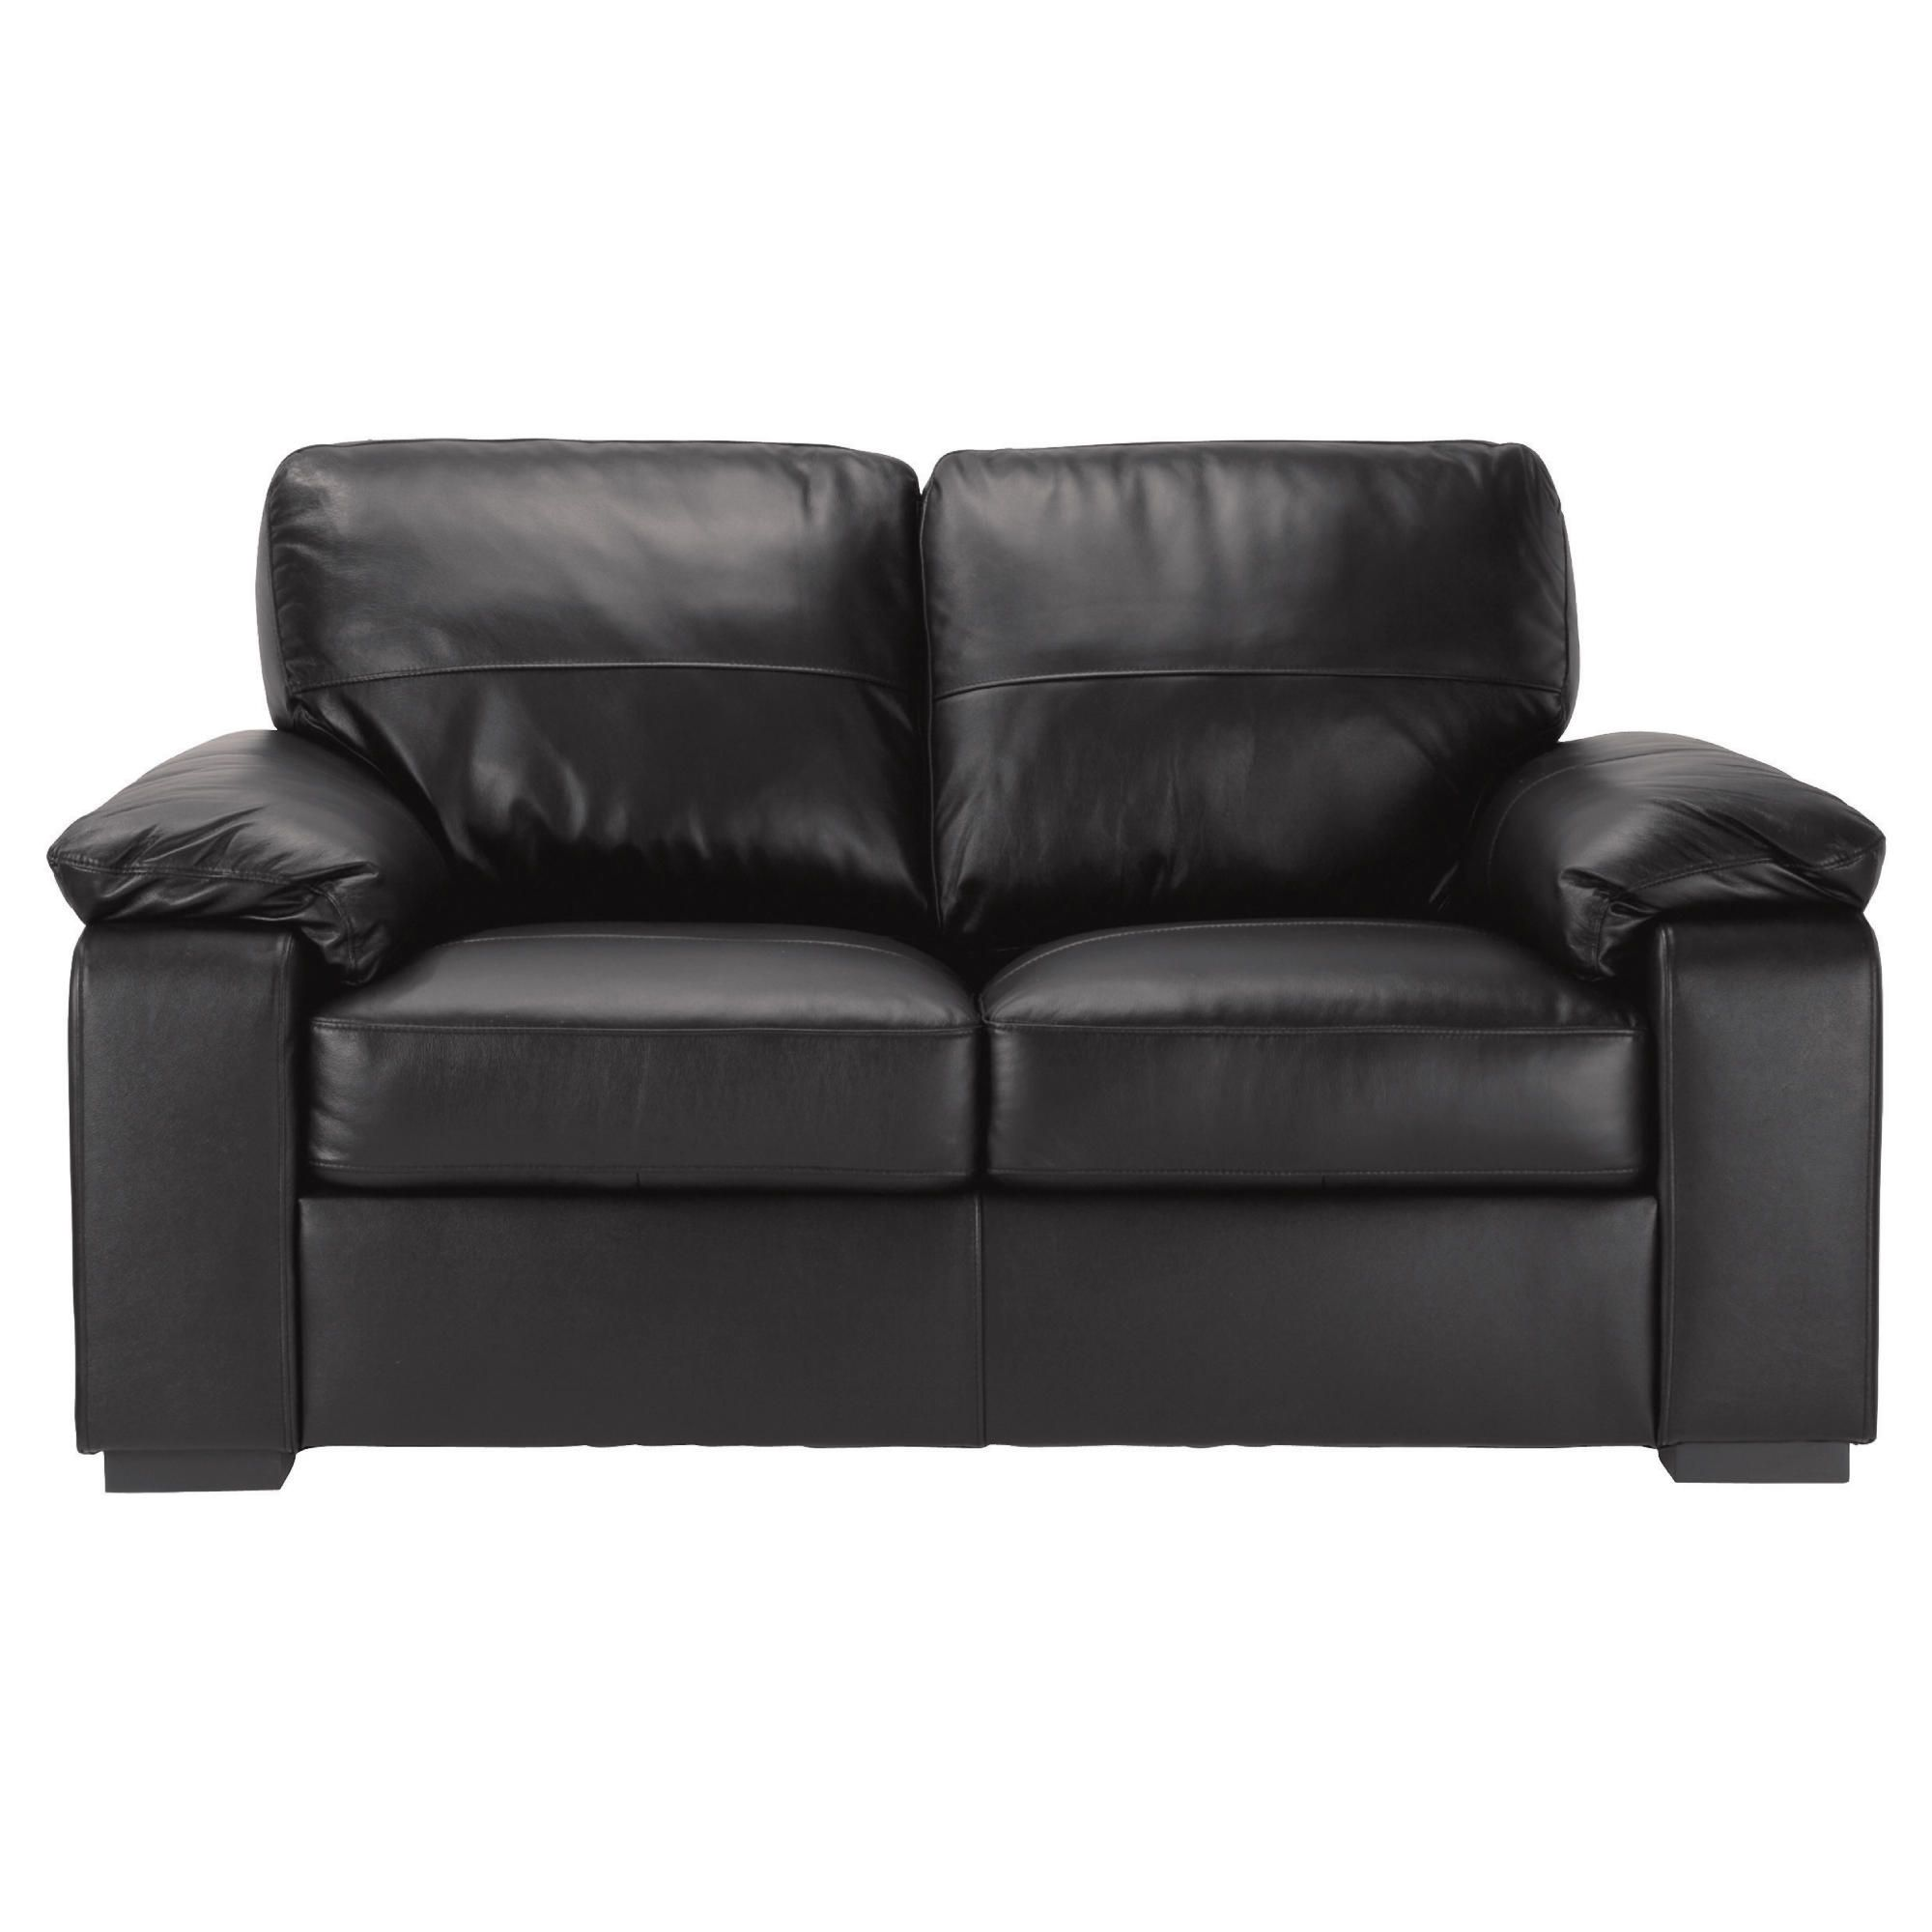 Ashmore Small Leather Sofa, Black at Tesco Direct